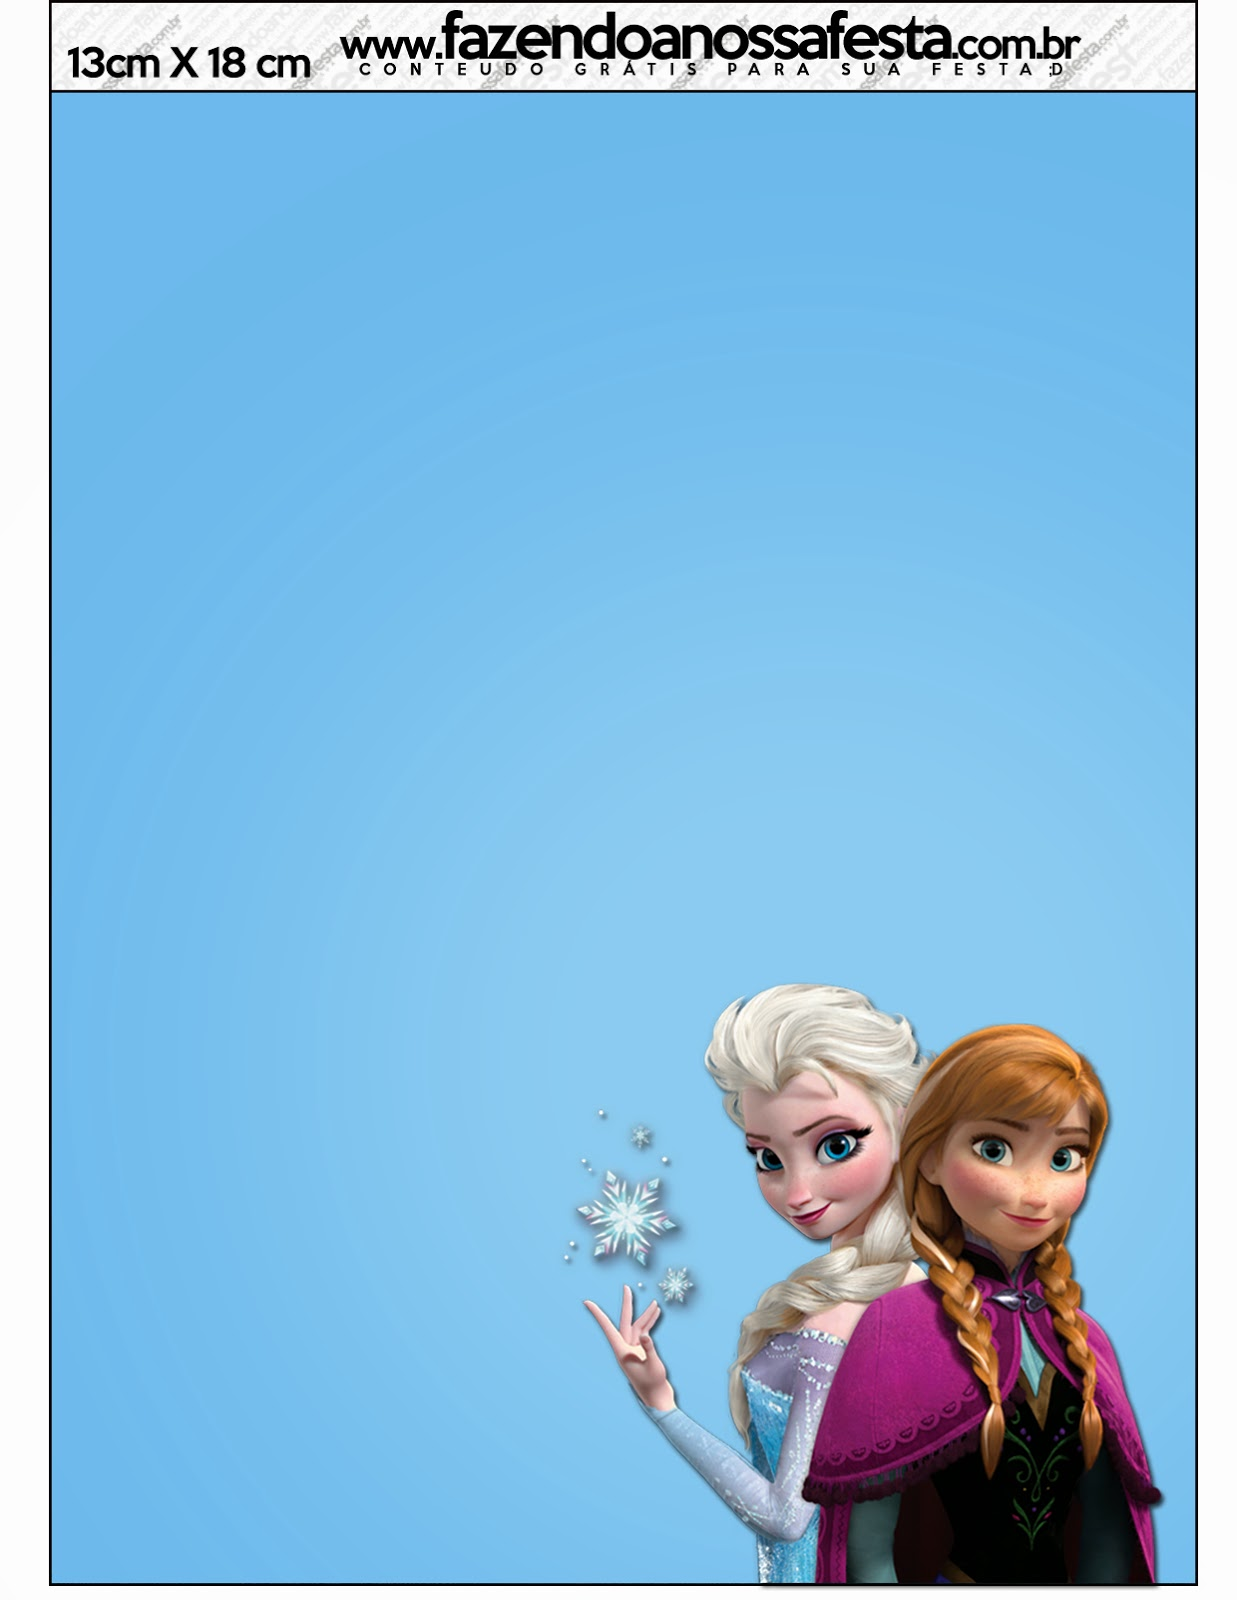 photo regarding Frozen Printable Invitations referred to as Frozen: Free of charge Printable Playing cards or Social gathering Invites. - Oh My